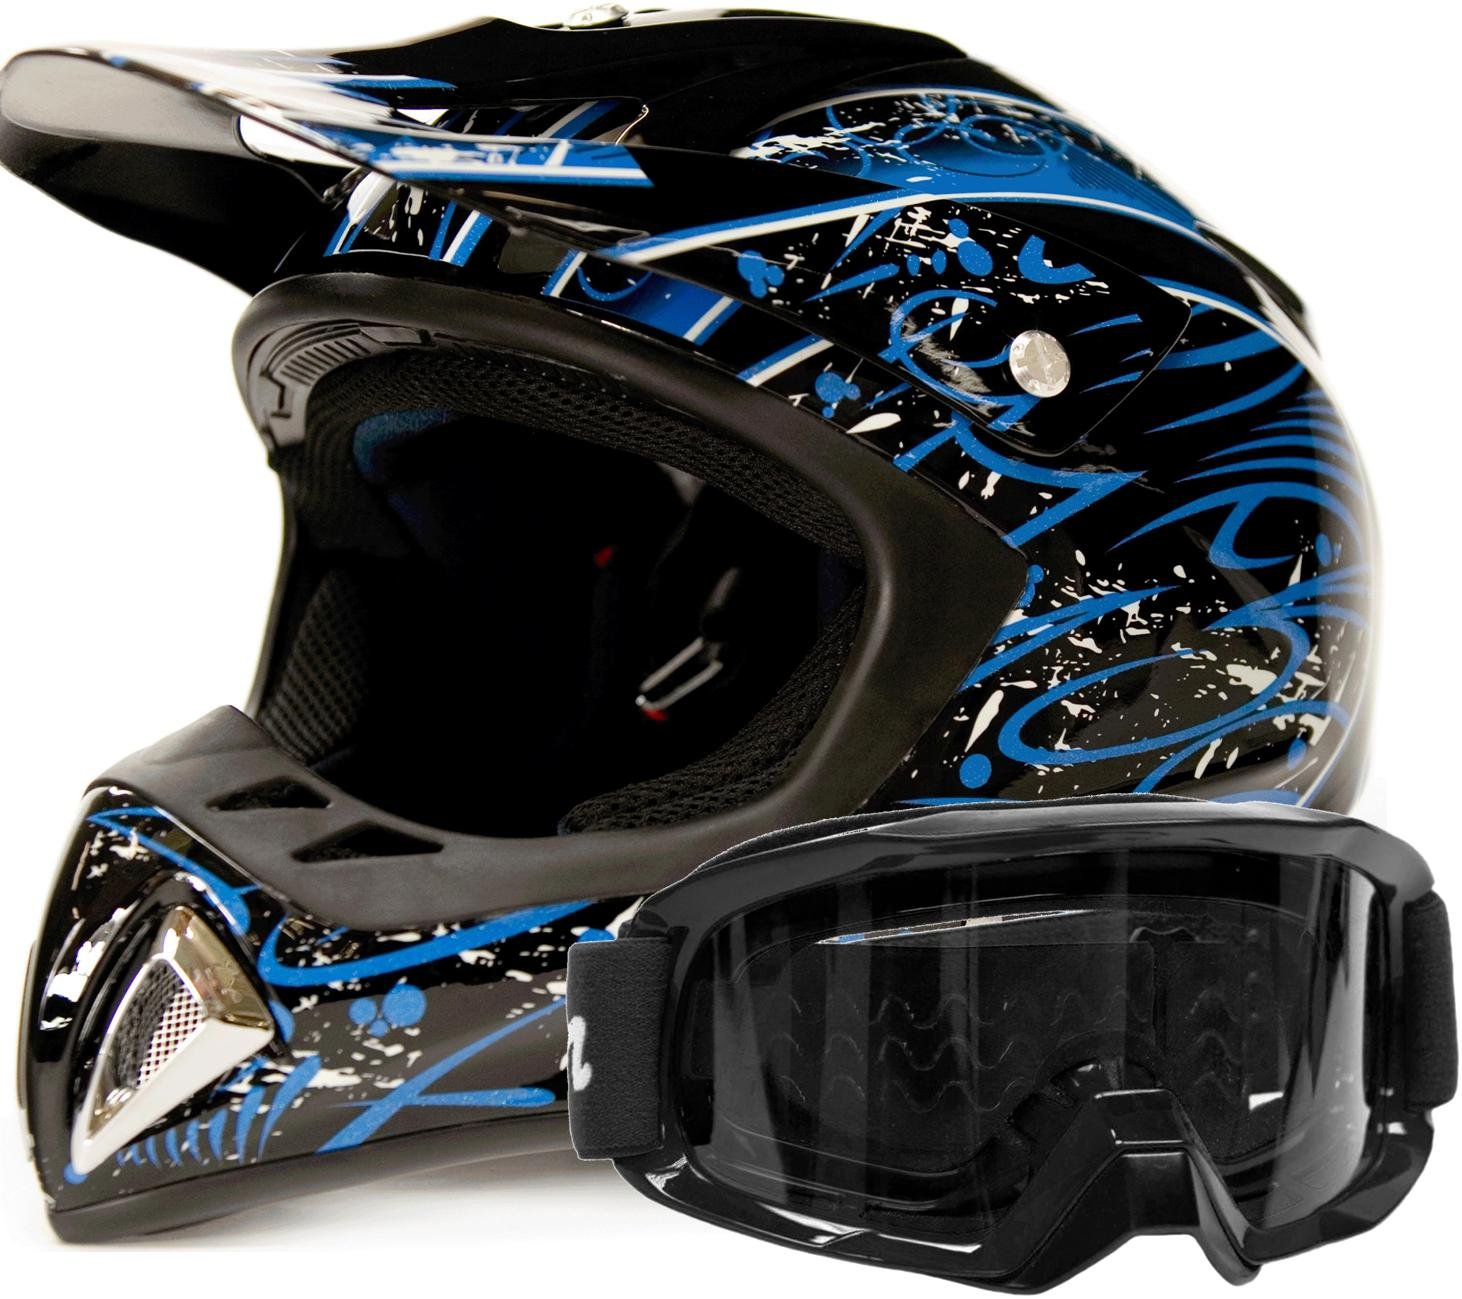 Adult Offroad Helmet & Goggles Gear Combo, Blue w/Black (Small)